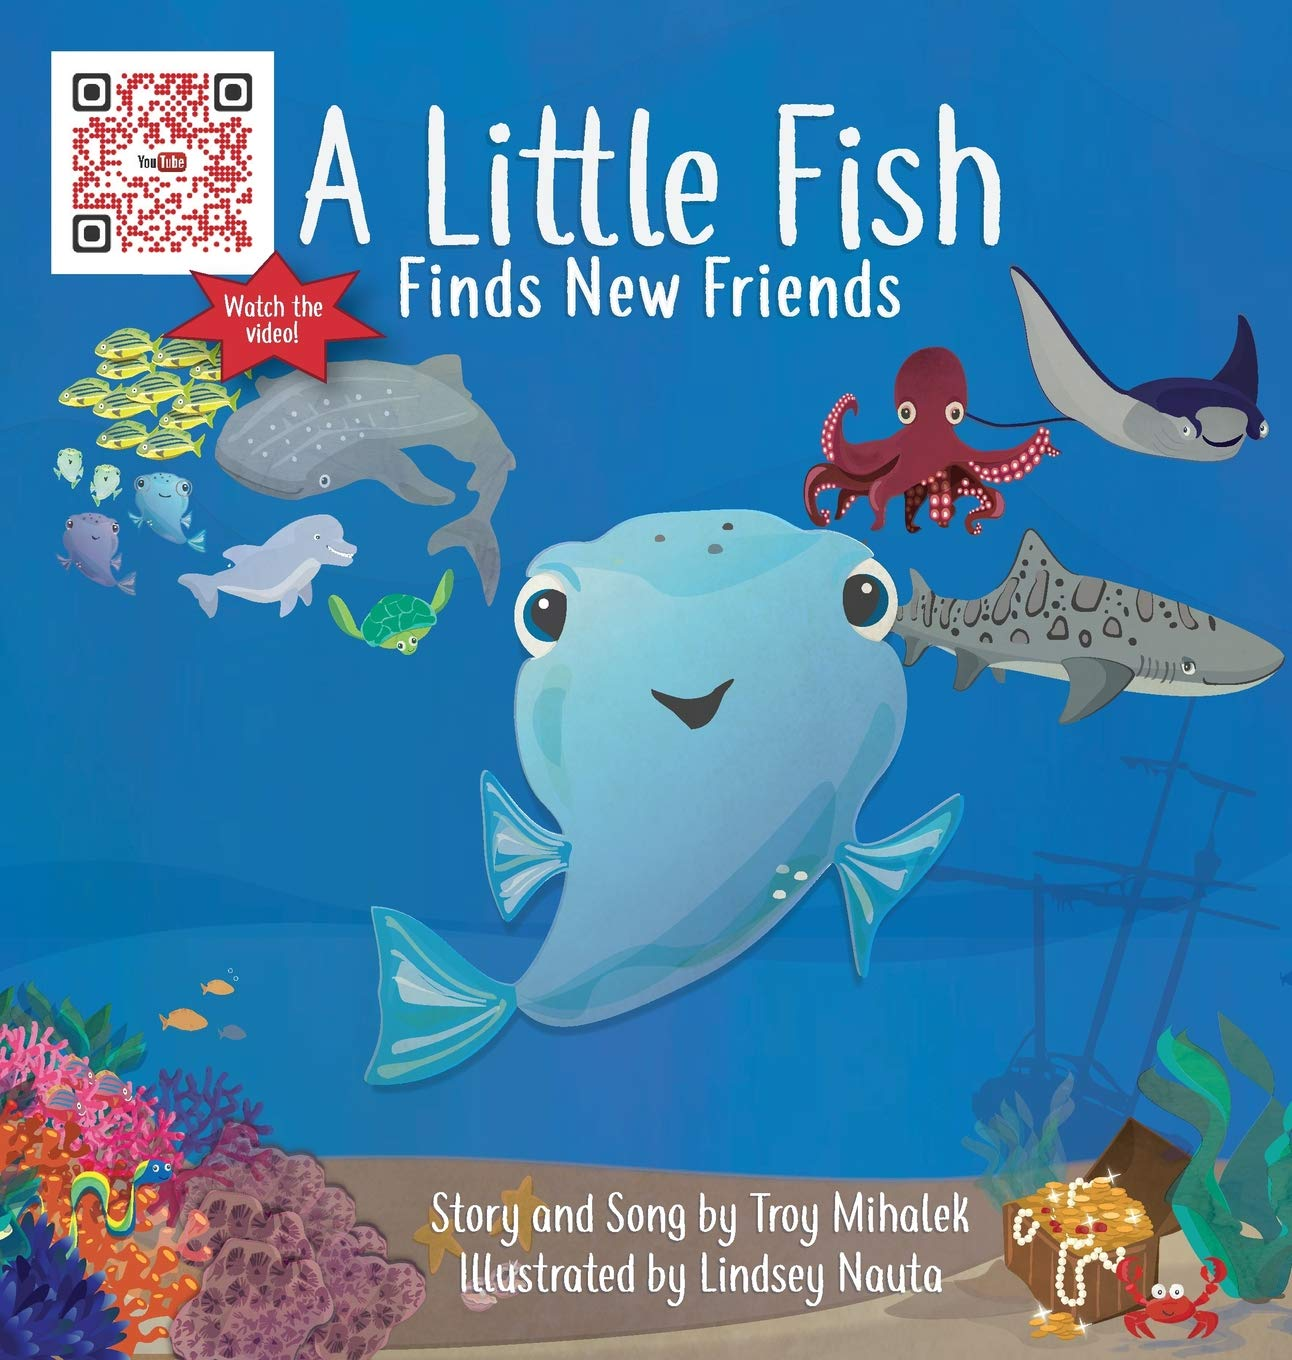 Children's Book Review: A Little Fish Finds New Friends